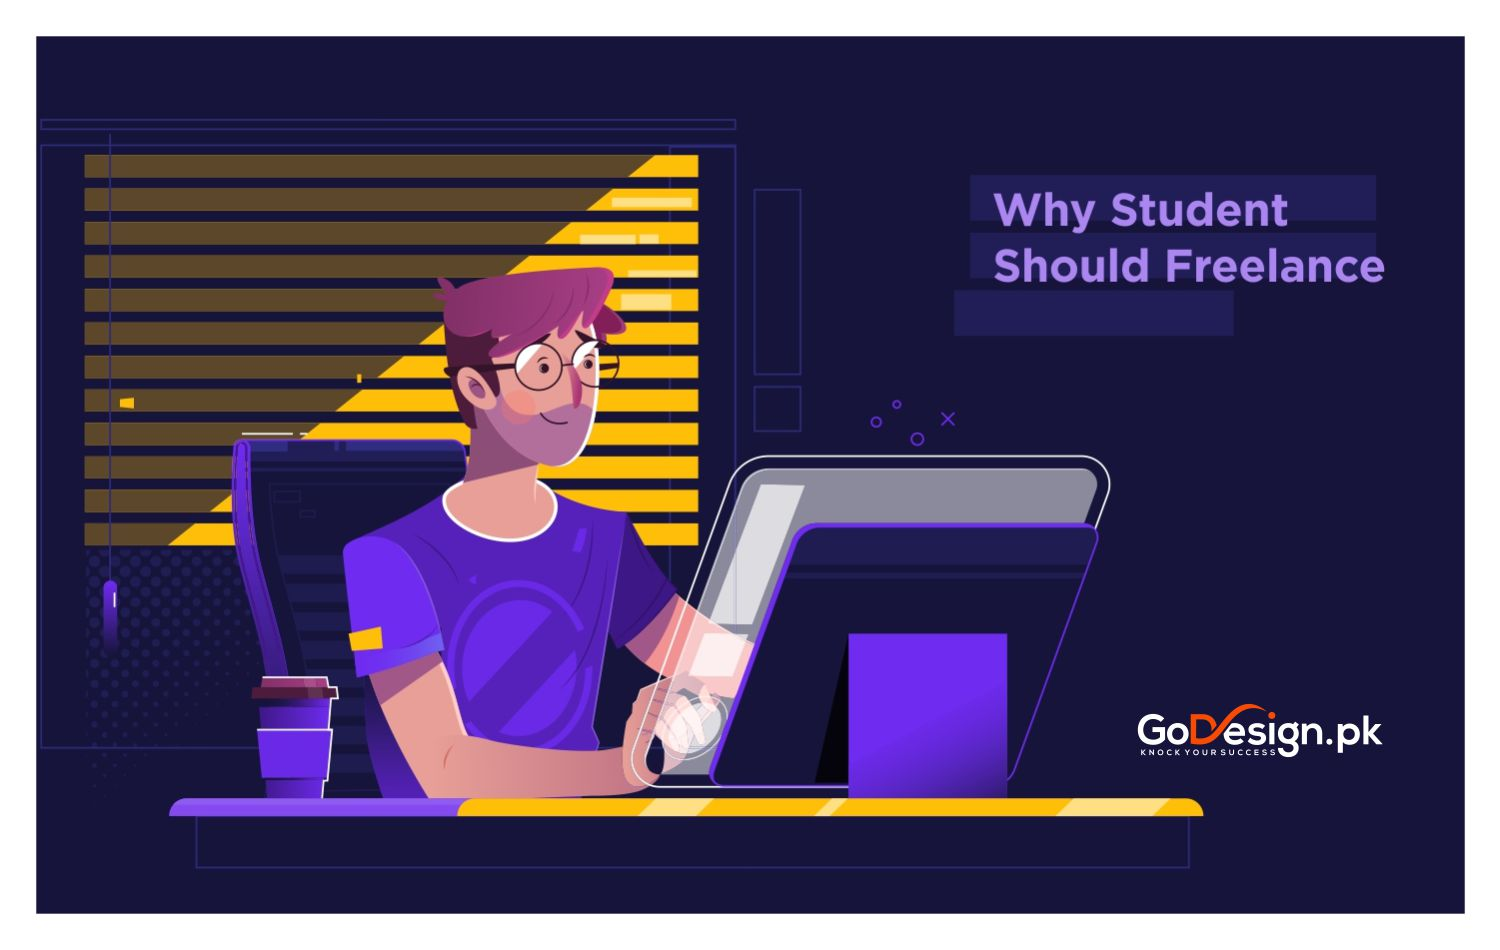 Why student should freelance